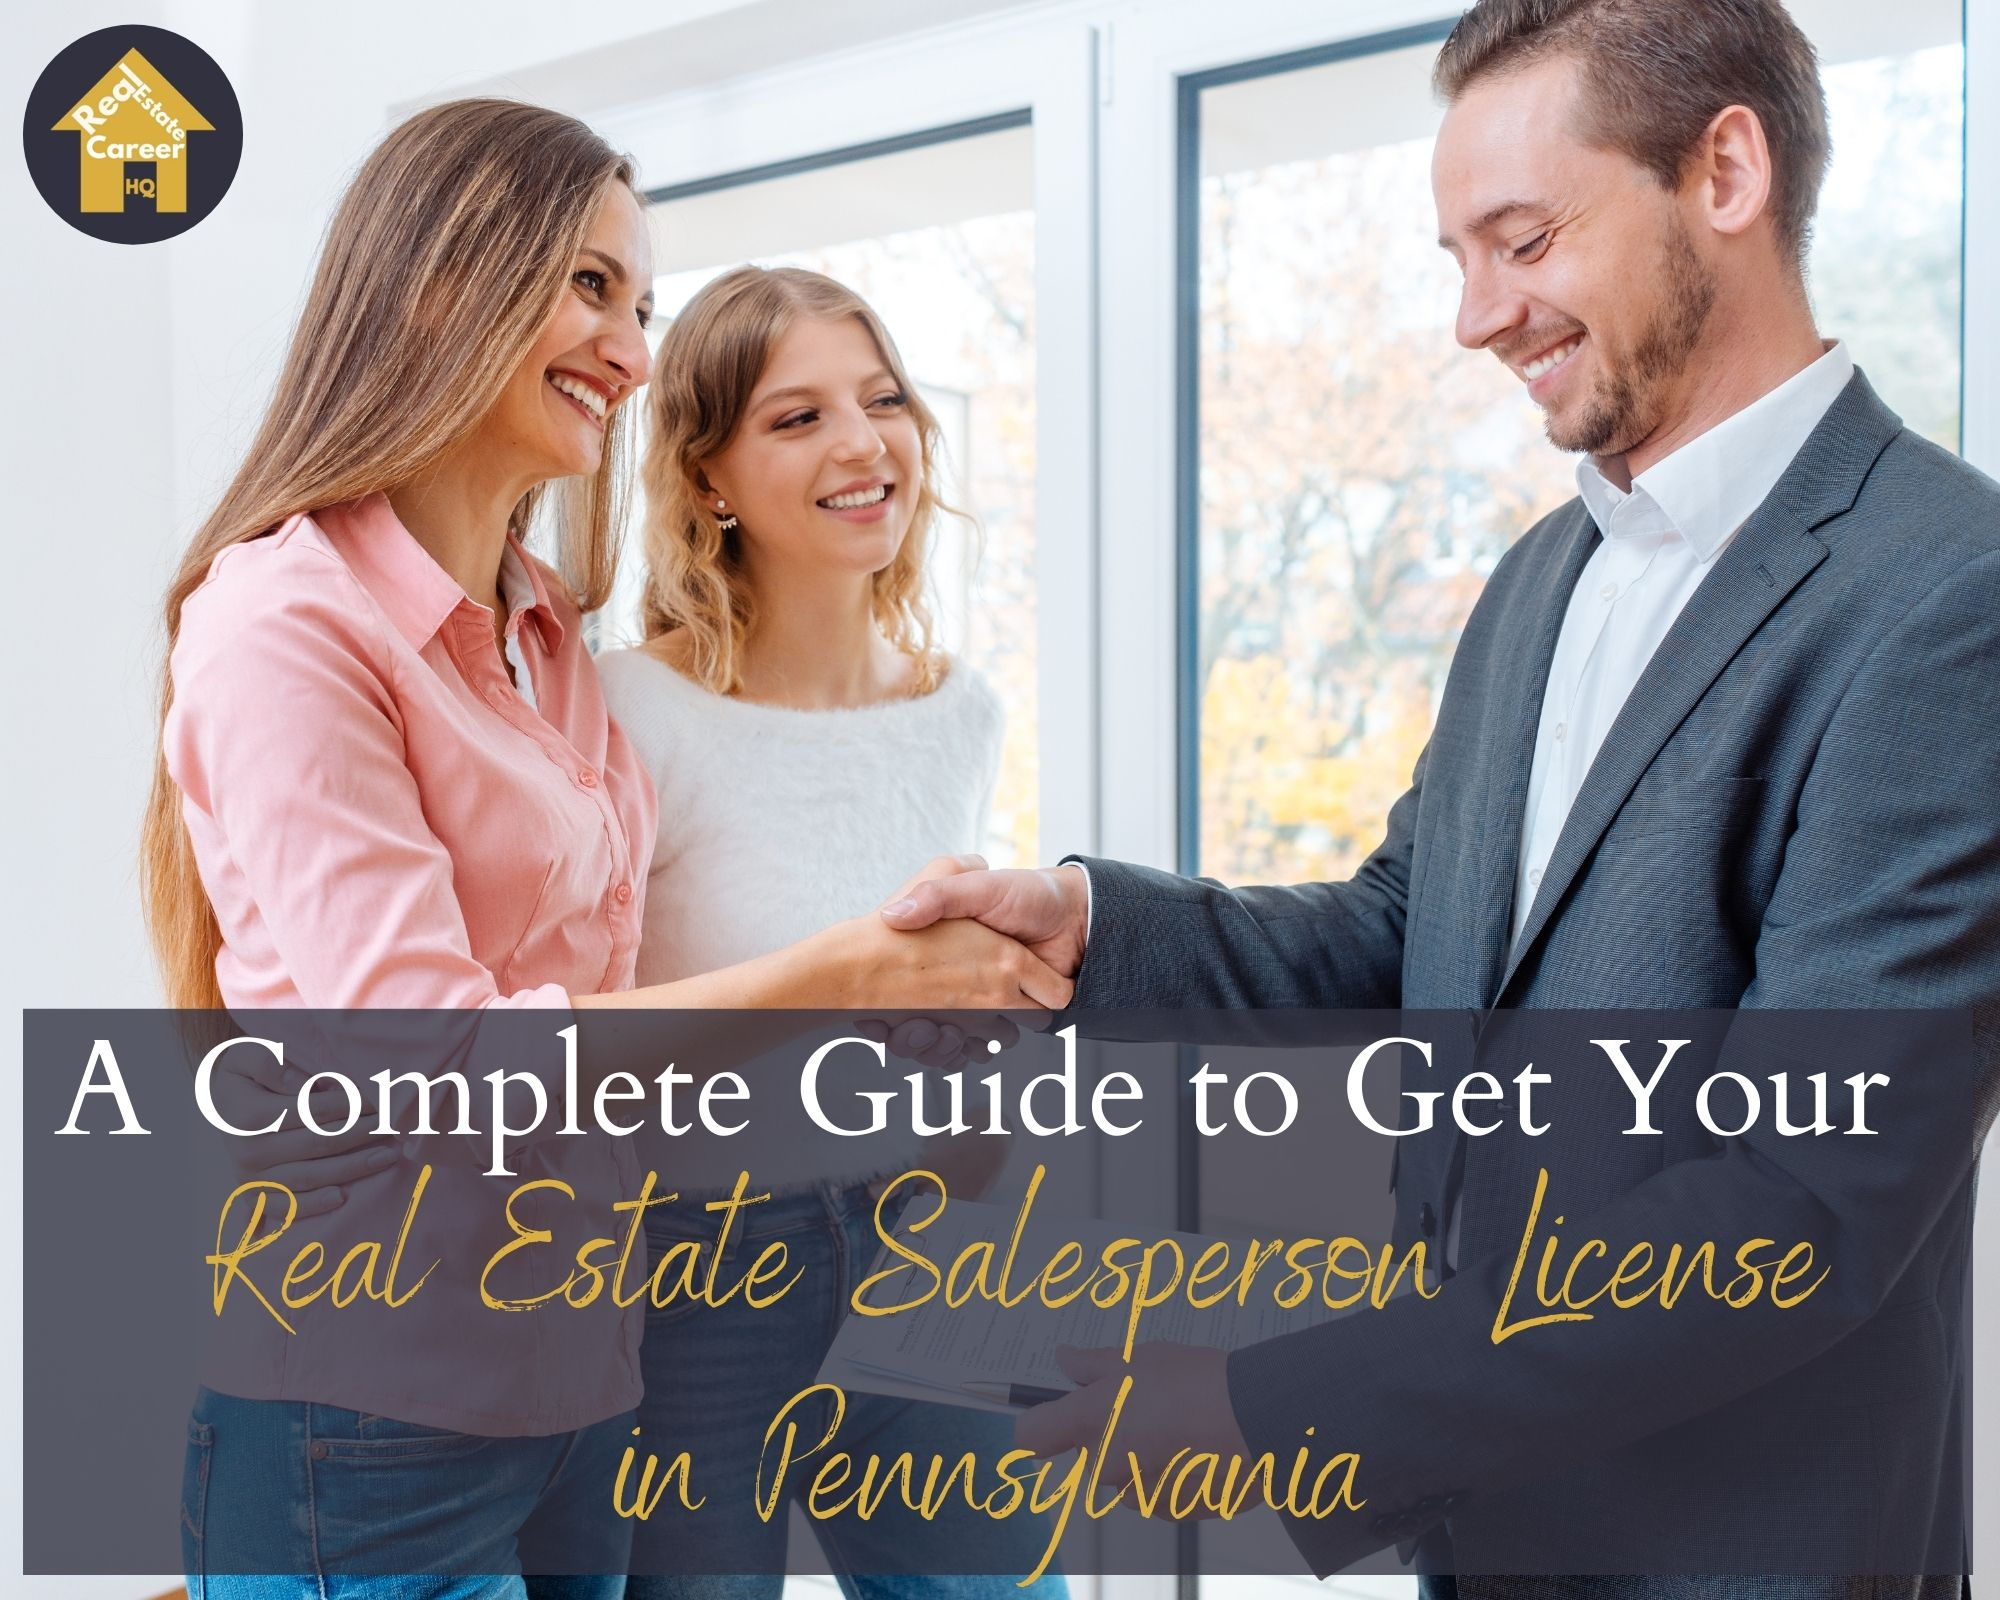 How to Become a Real Estate Salesperson in Pennsylvania?